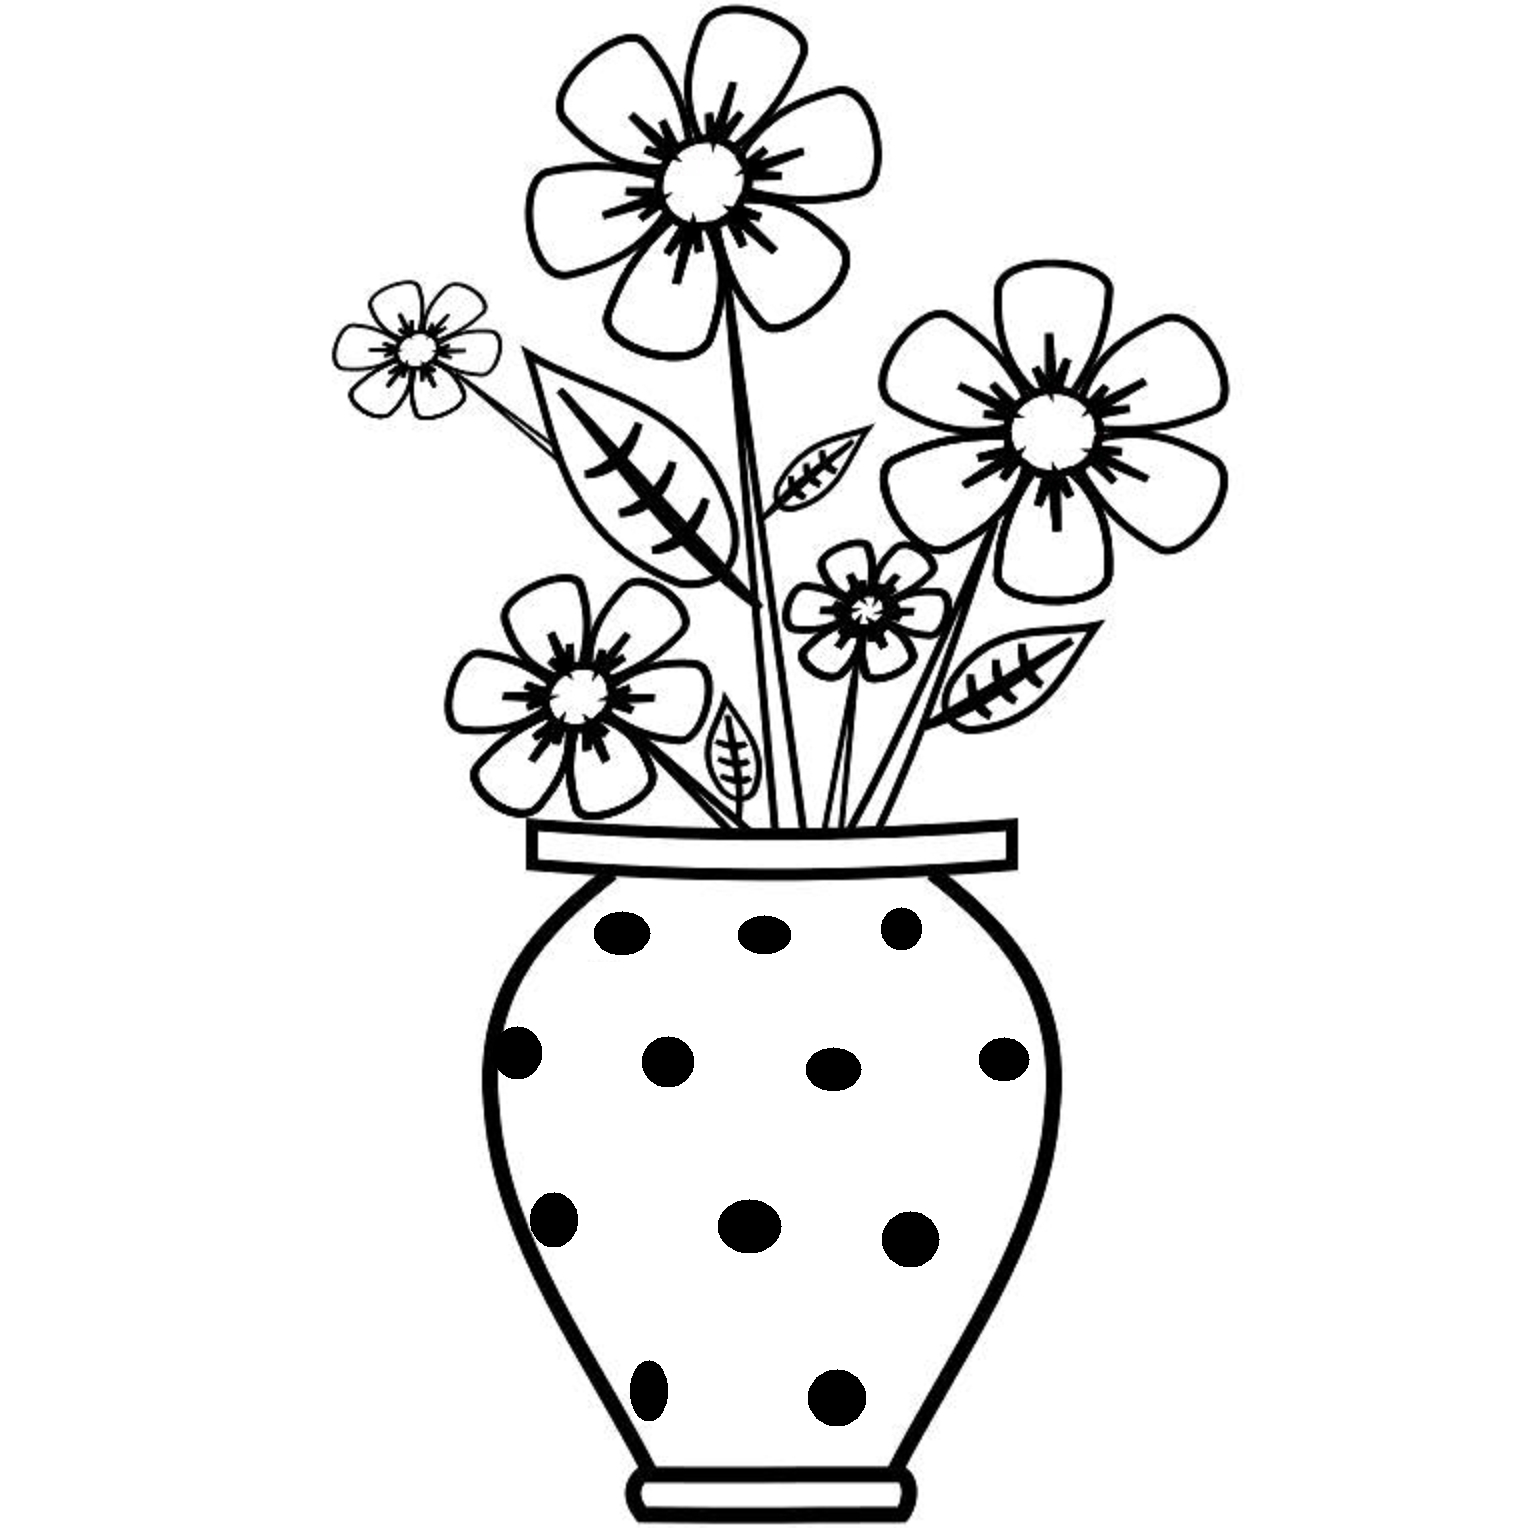 1532x1528 Vase Drawing Flower Drawing Of Flower Vase With Flowers